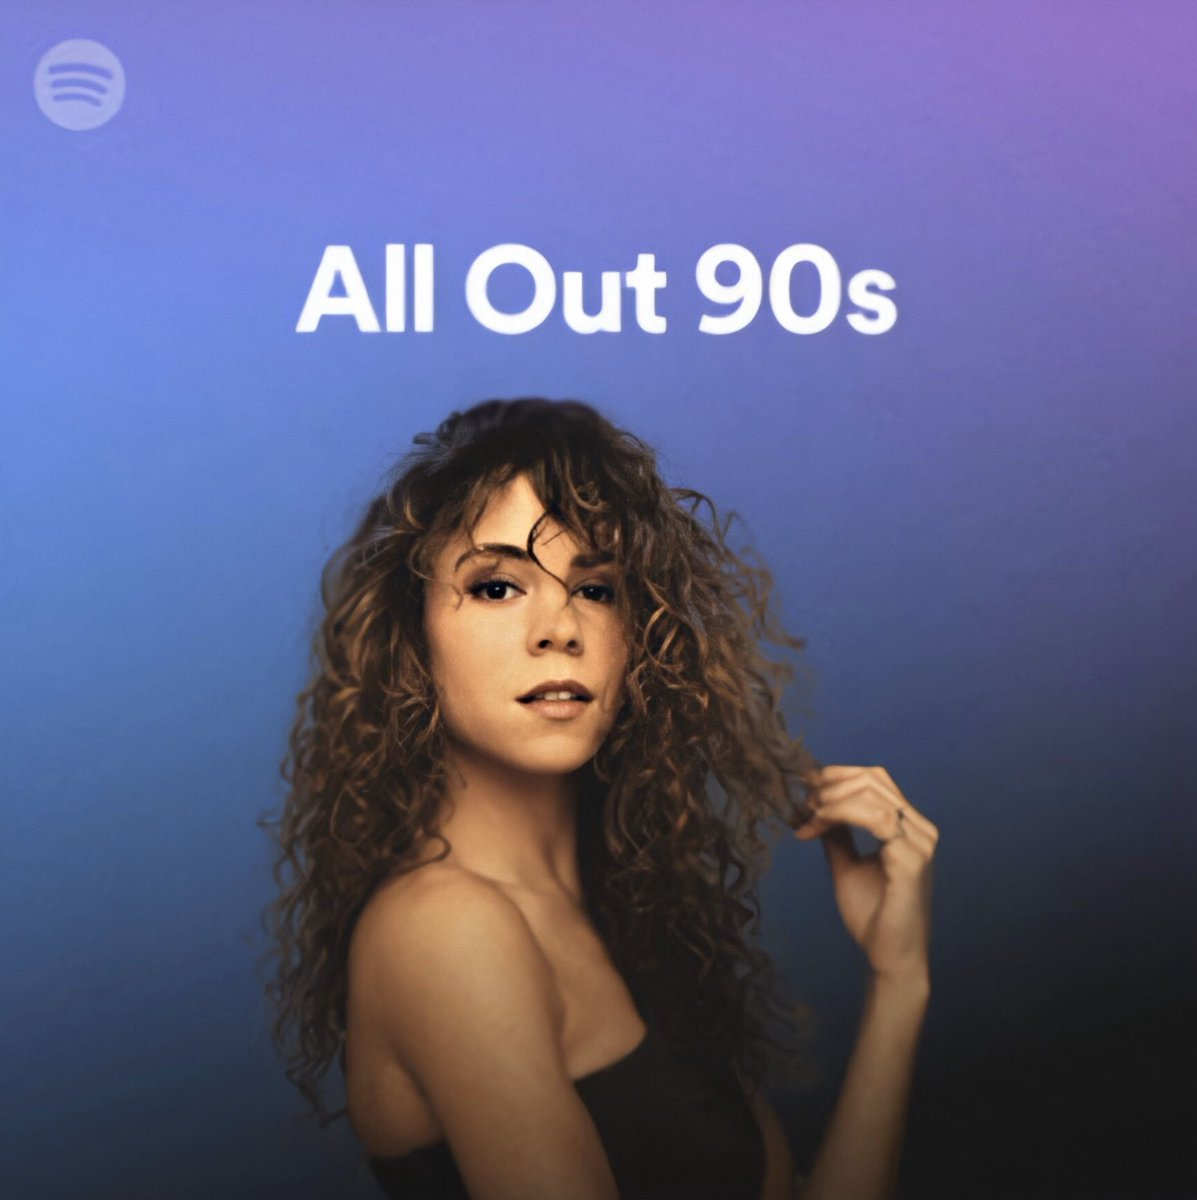 All Out 90s (2020) Part 2